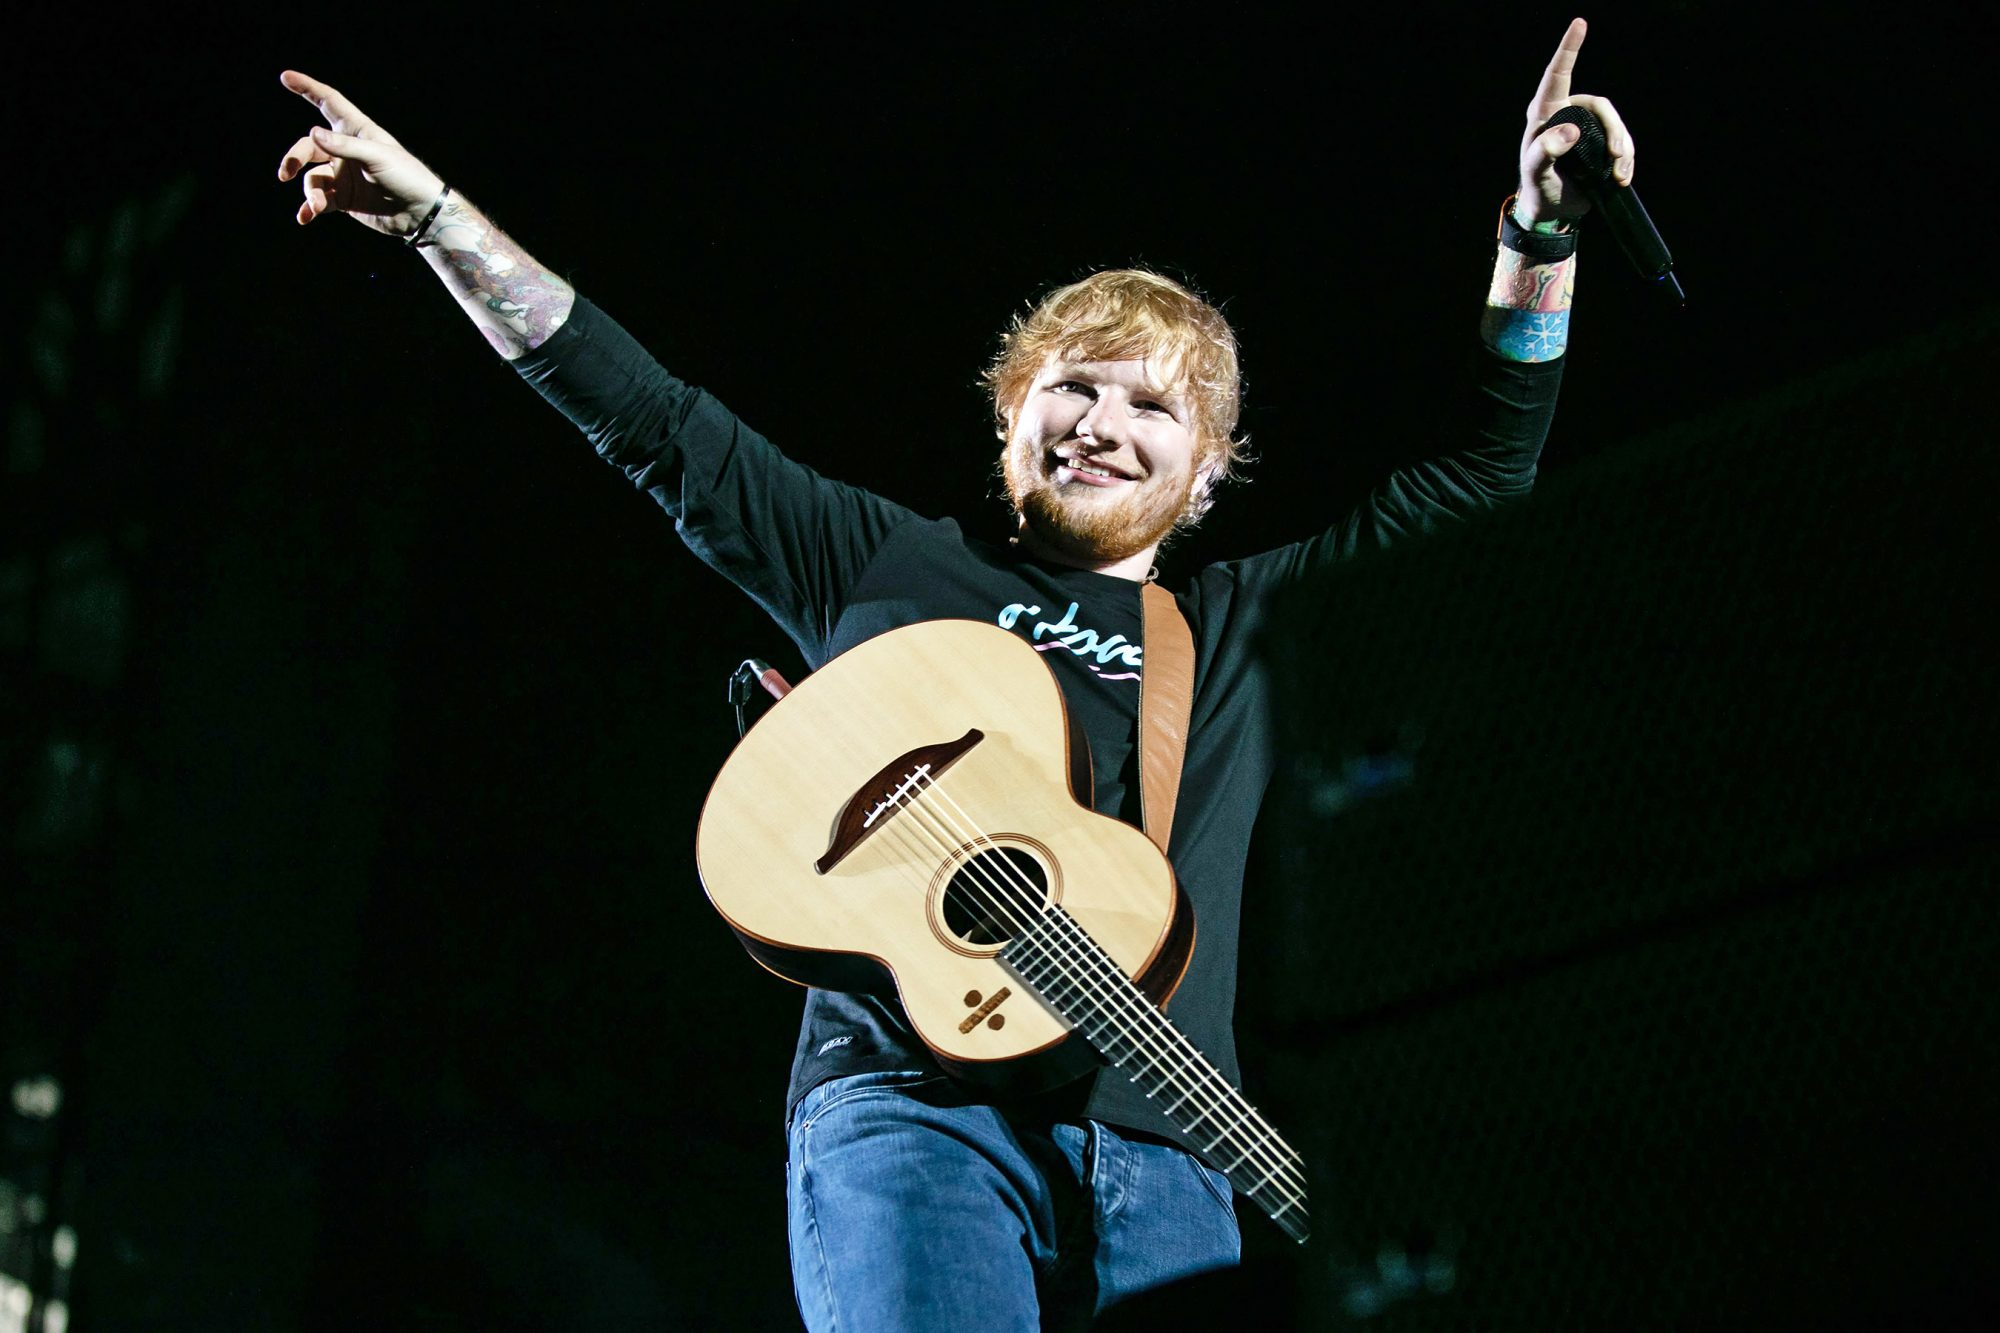 Ed Sheeran in concert at Ford Field, Detroit, USA - 09 Sep 2018